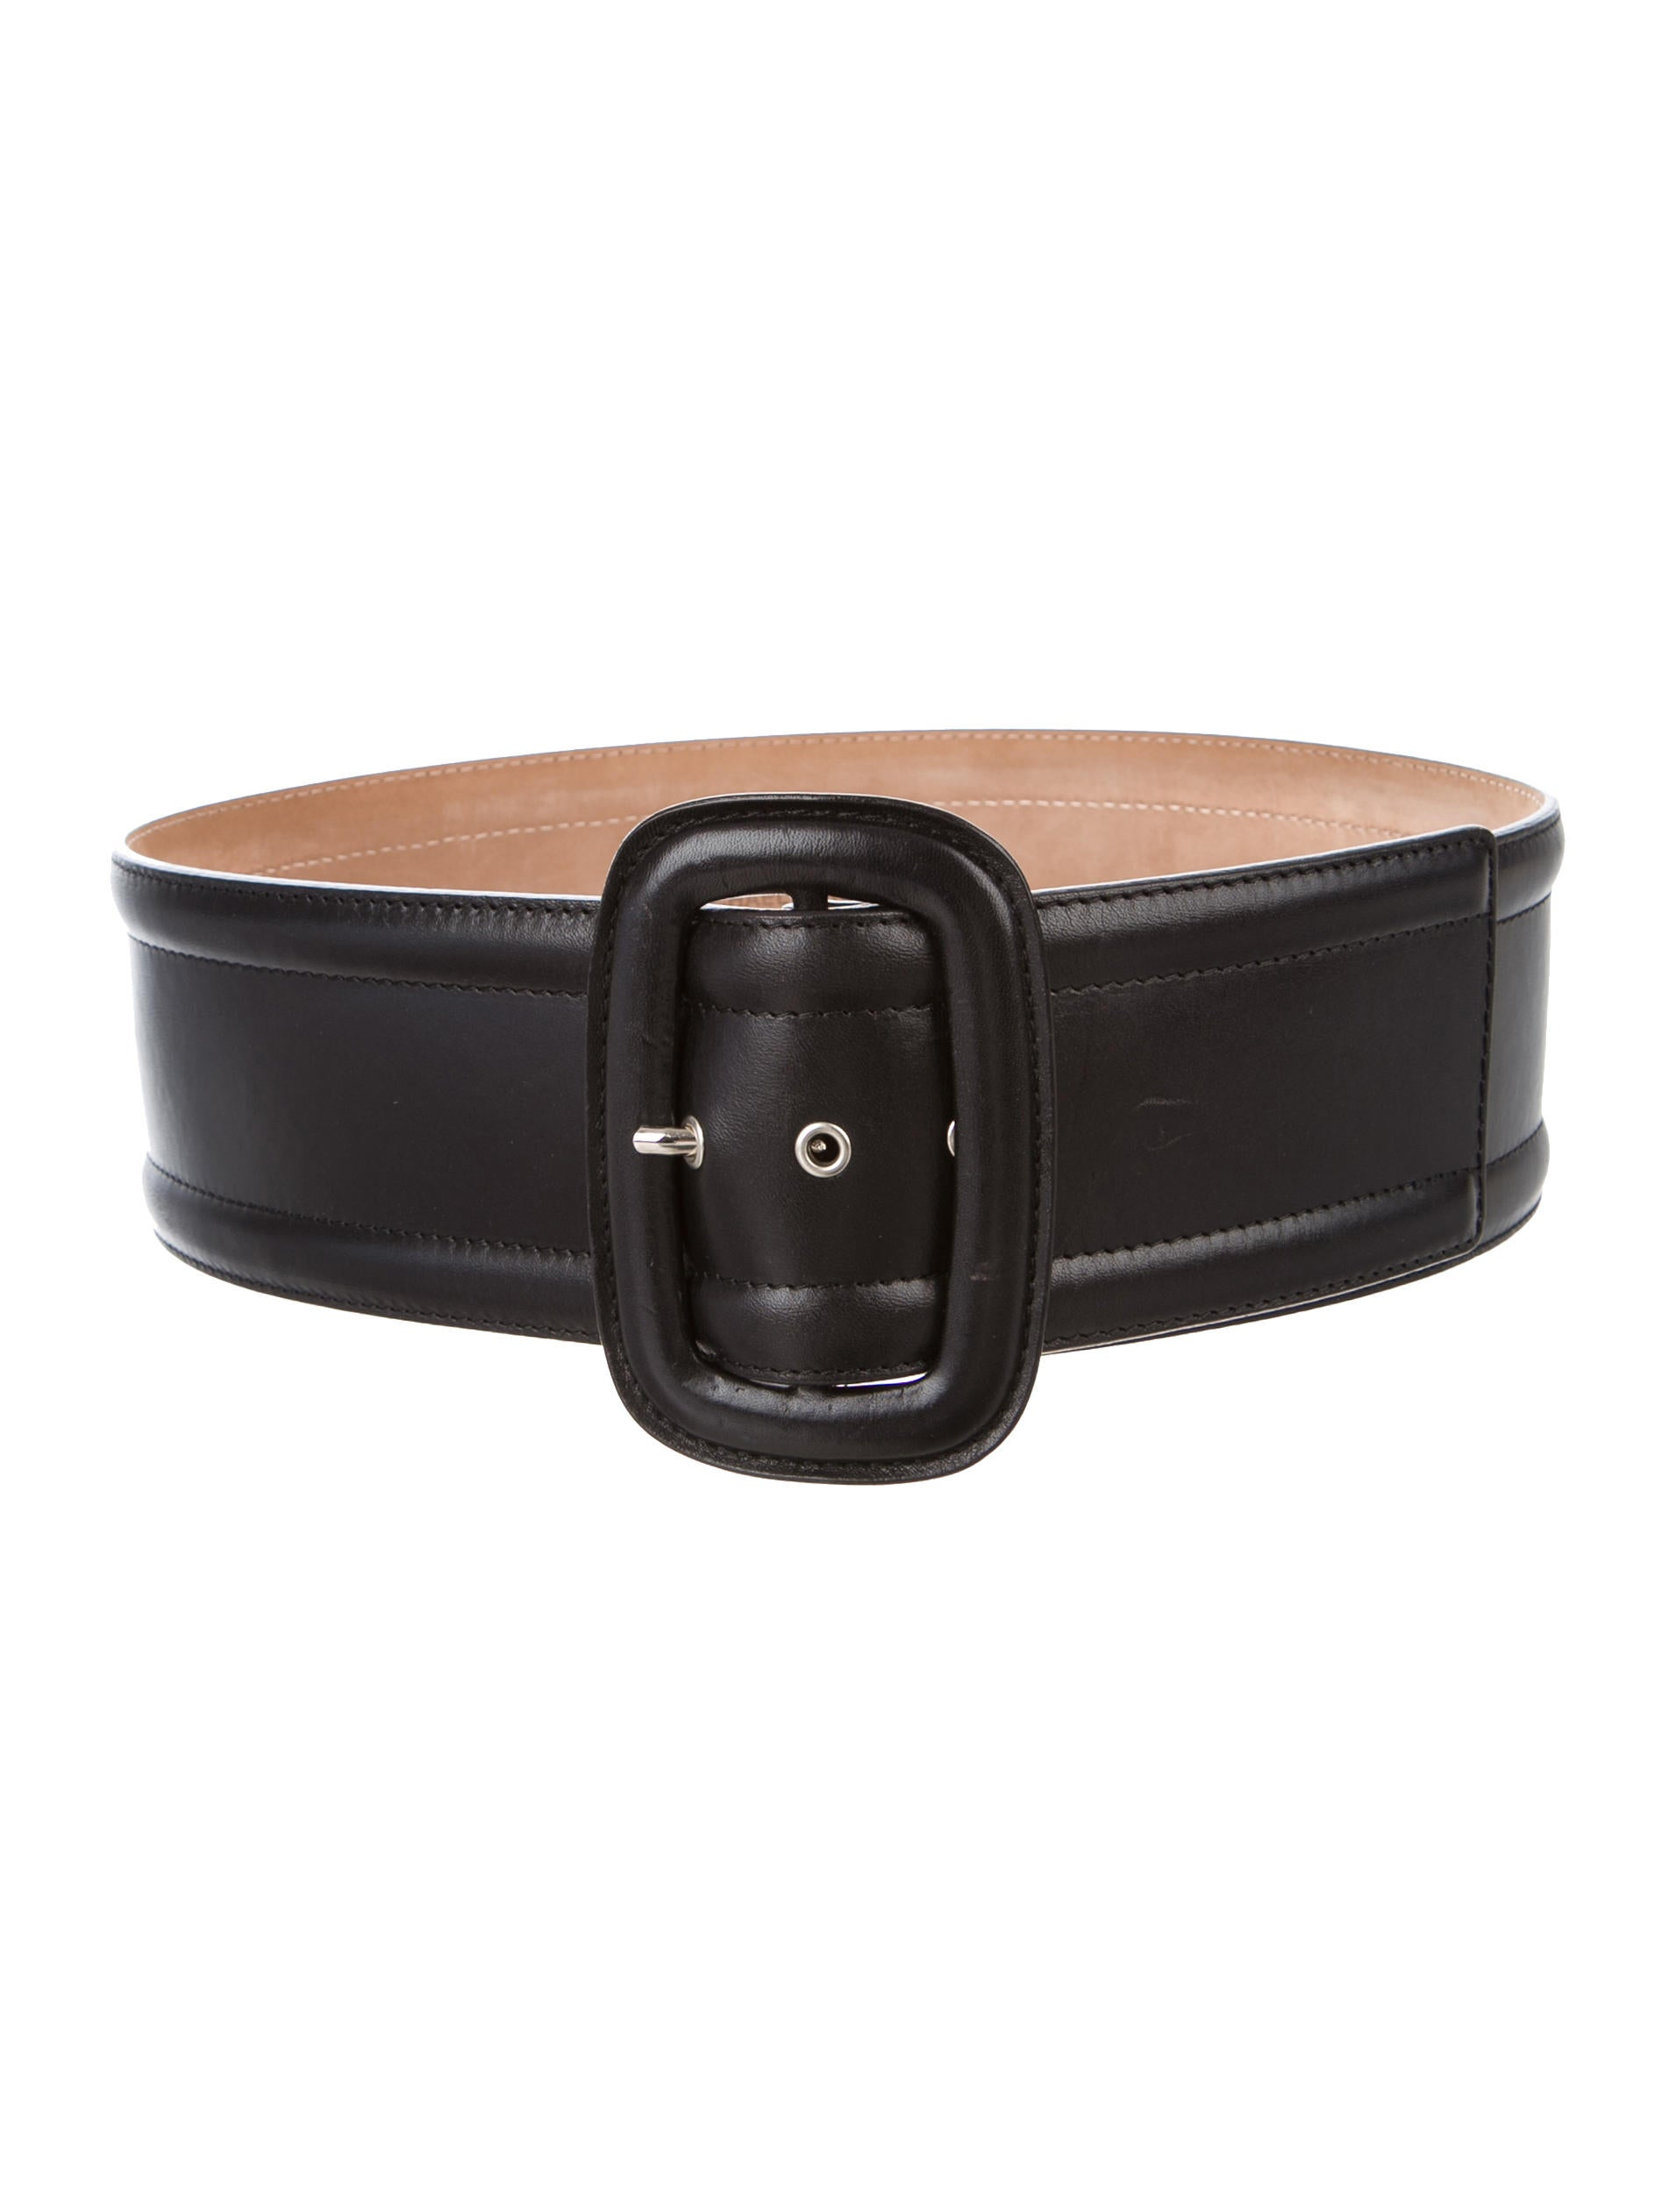 Discover the range of women's belts at ASOS. From stylish waist belts to classic leather styles, choose from a variety of buckles and colours.